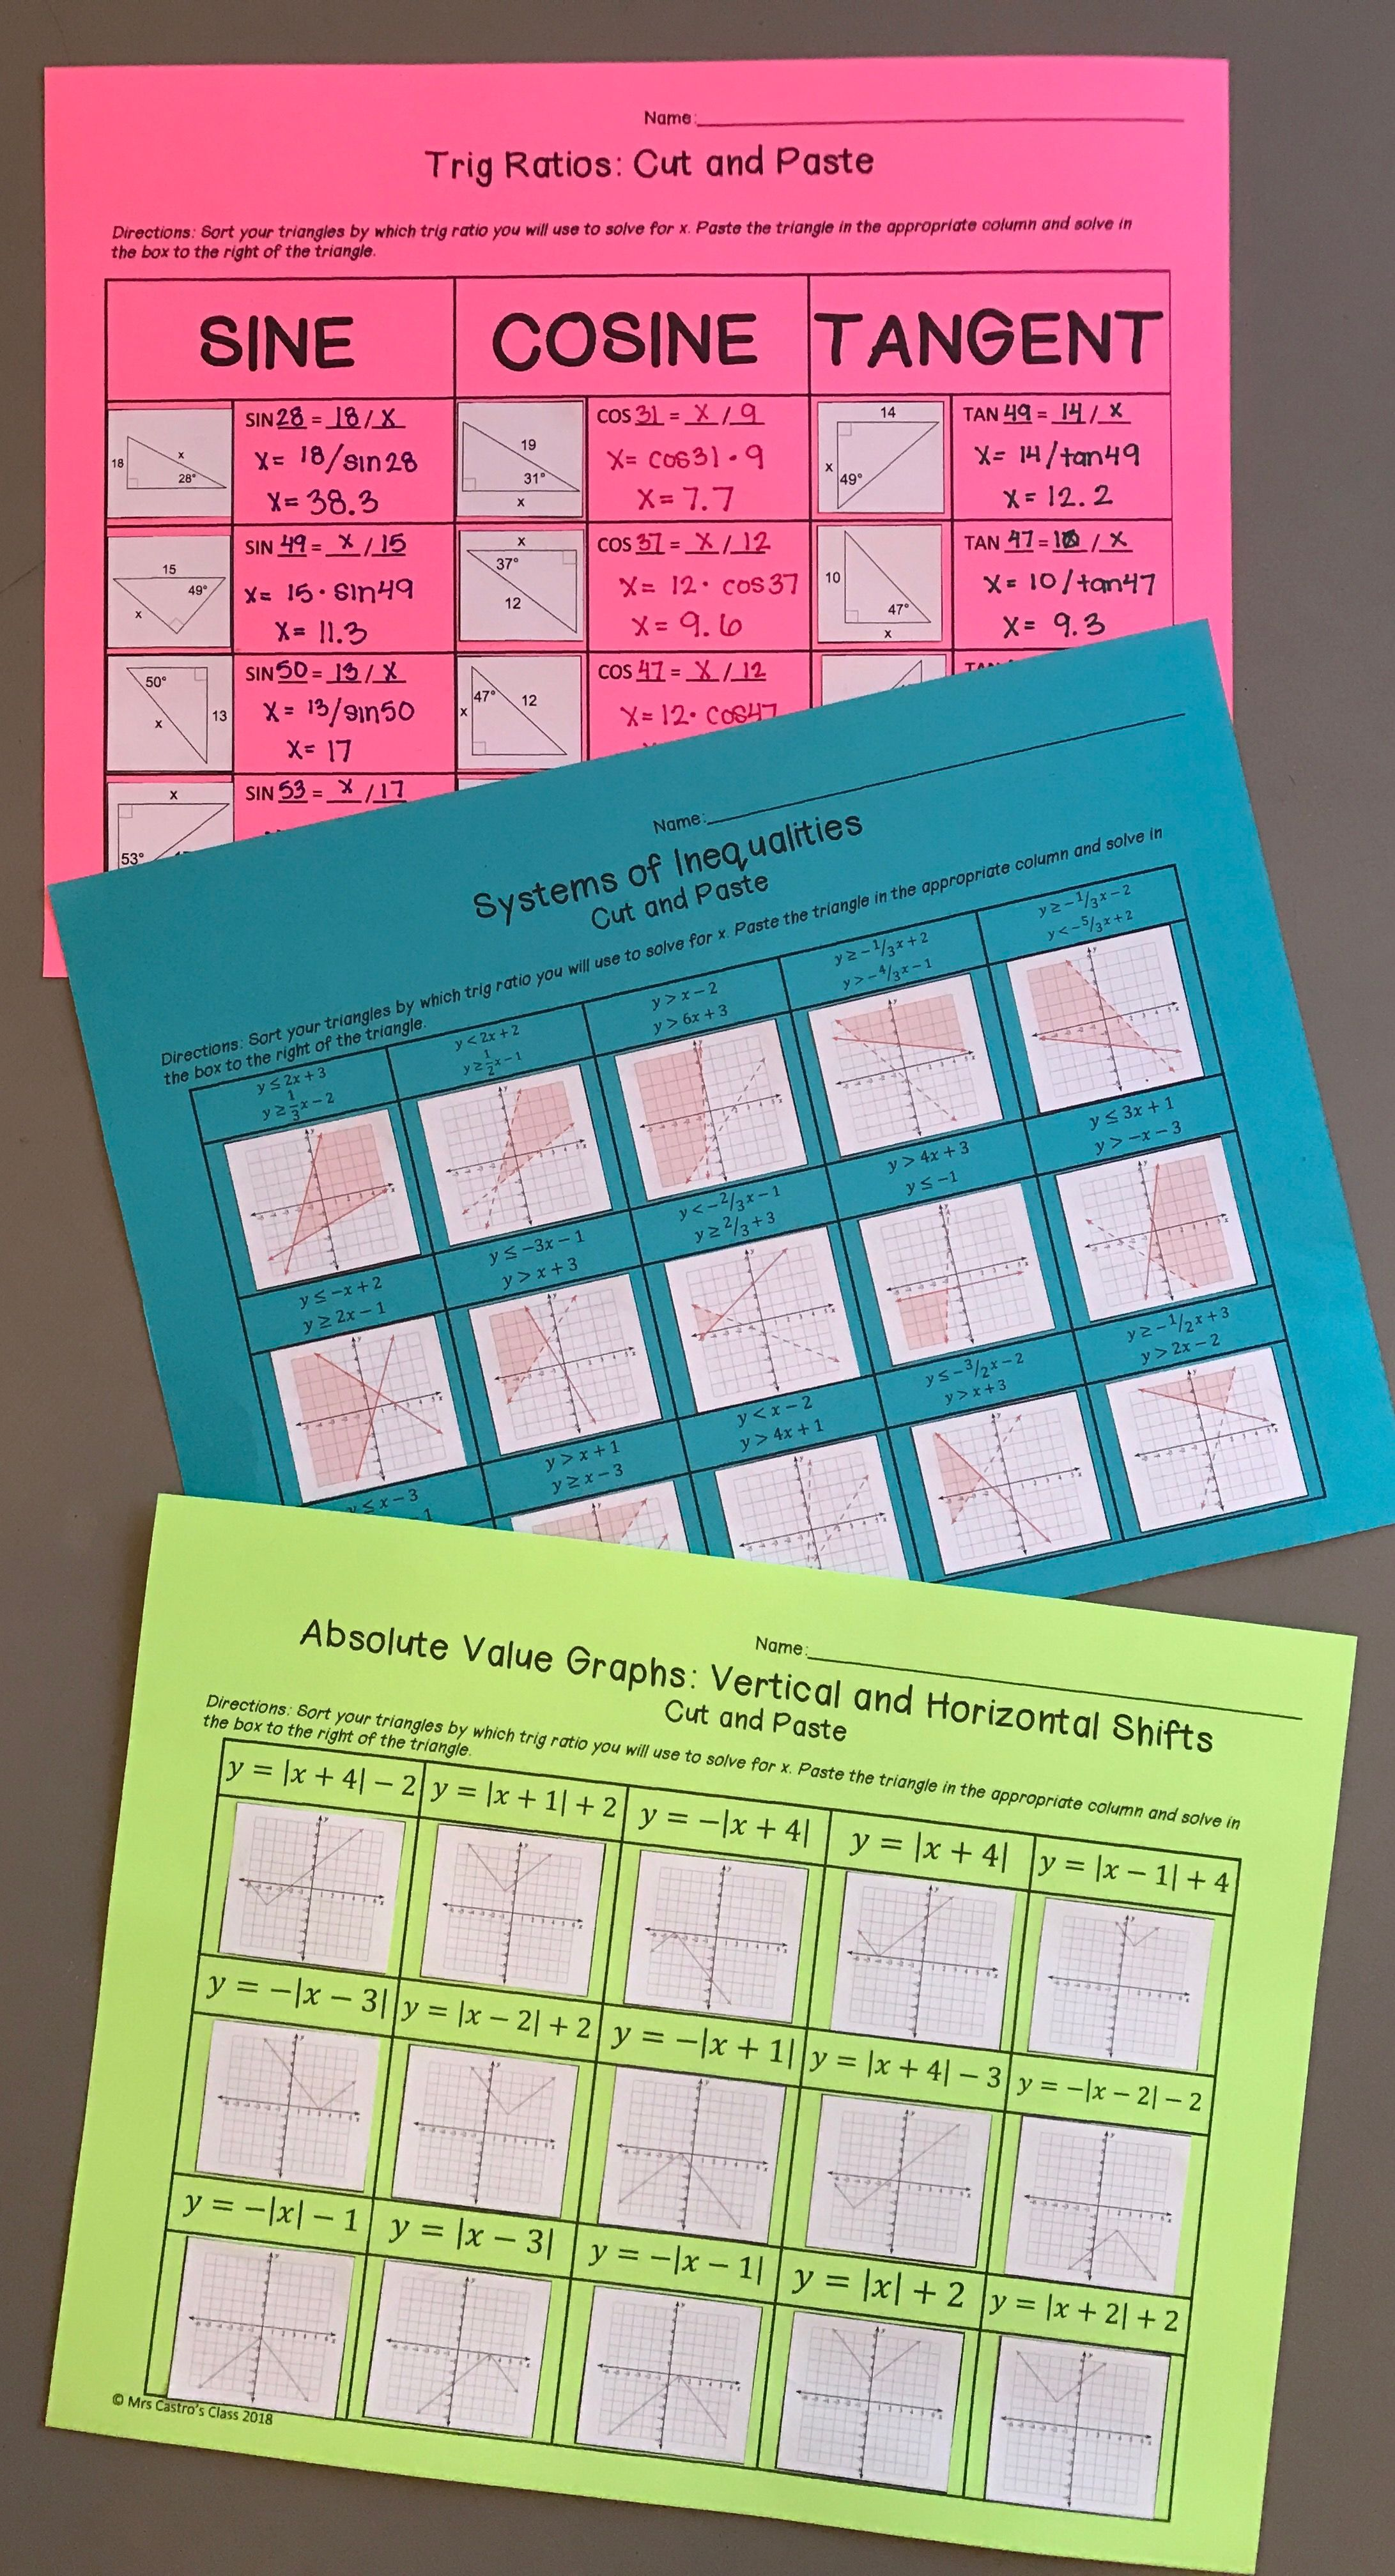 Trig Ratios: Cut and Paste Activity | High School Math Ideas ...